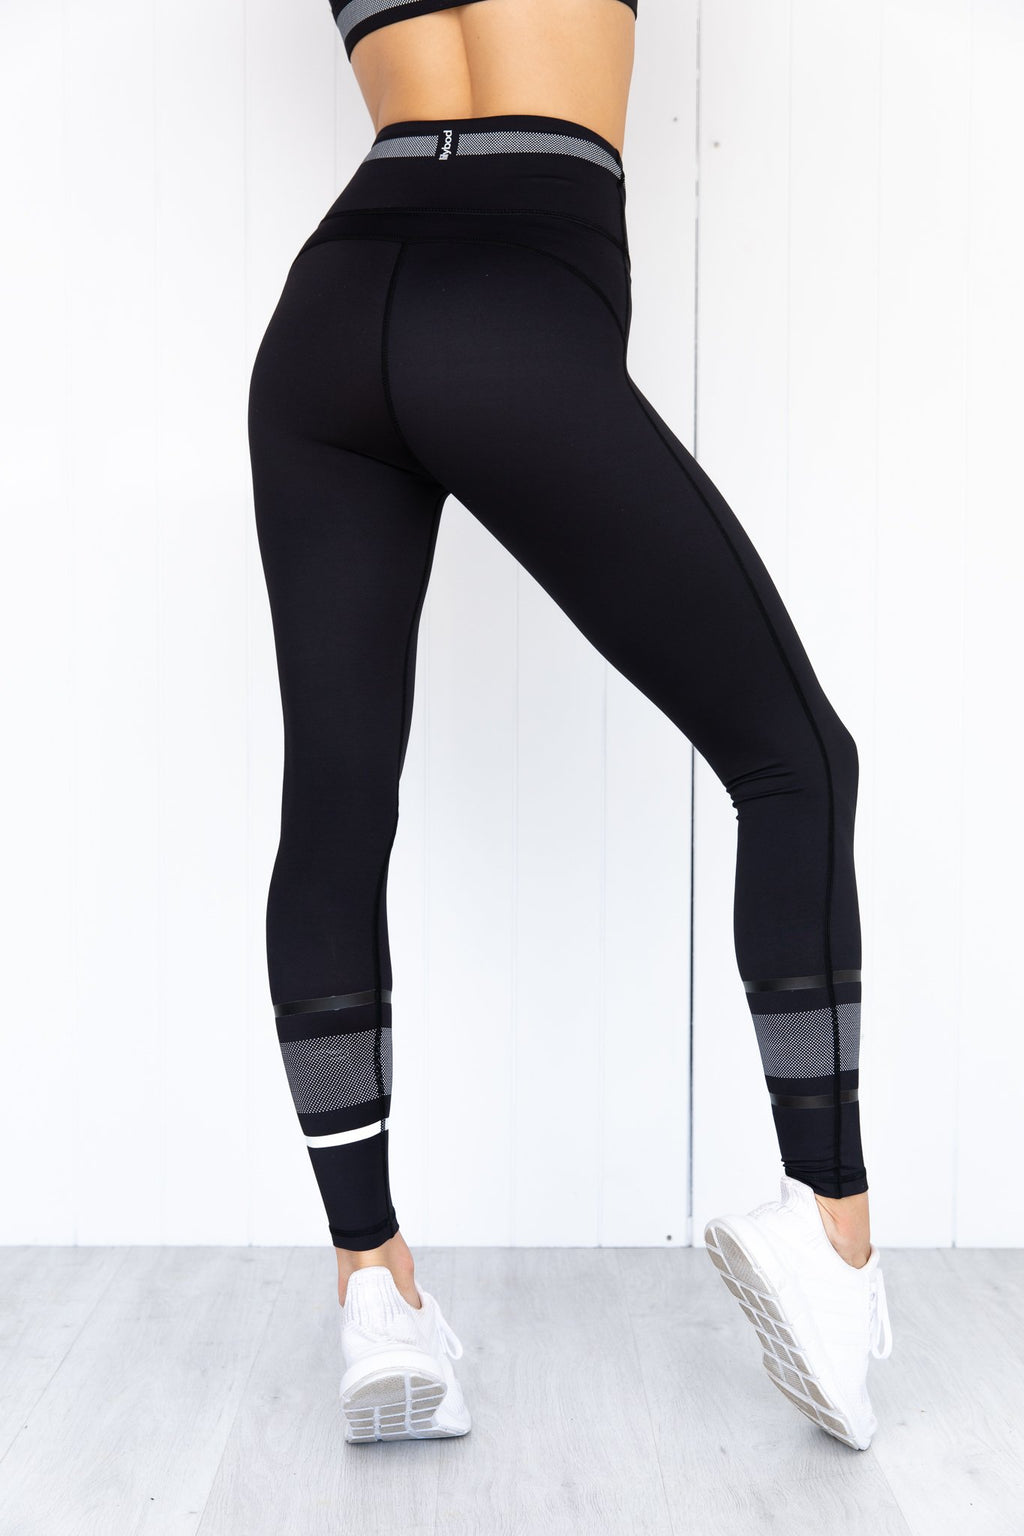 Jordan Phantom Jet Legging